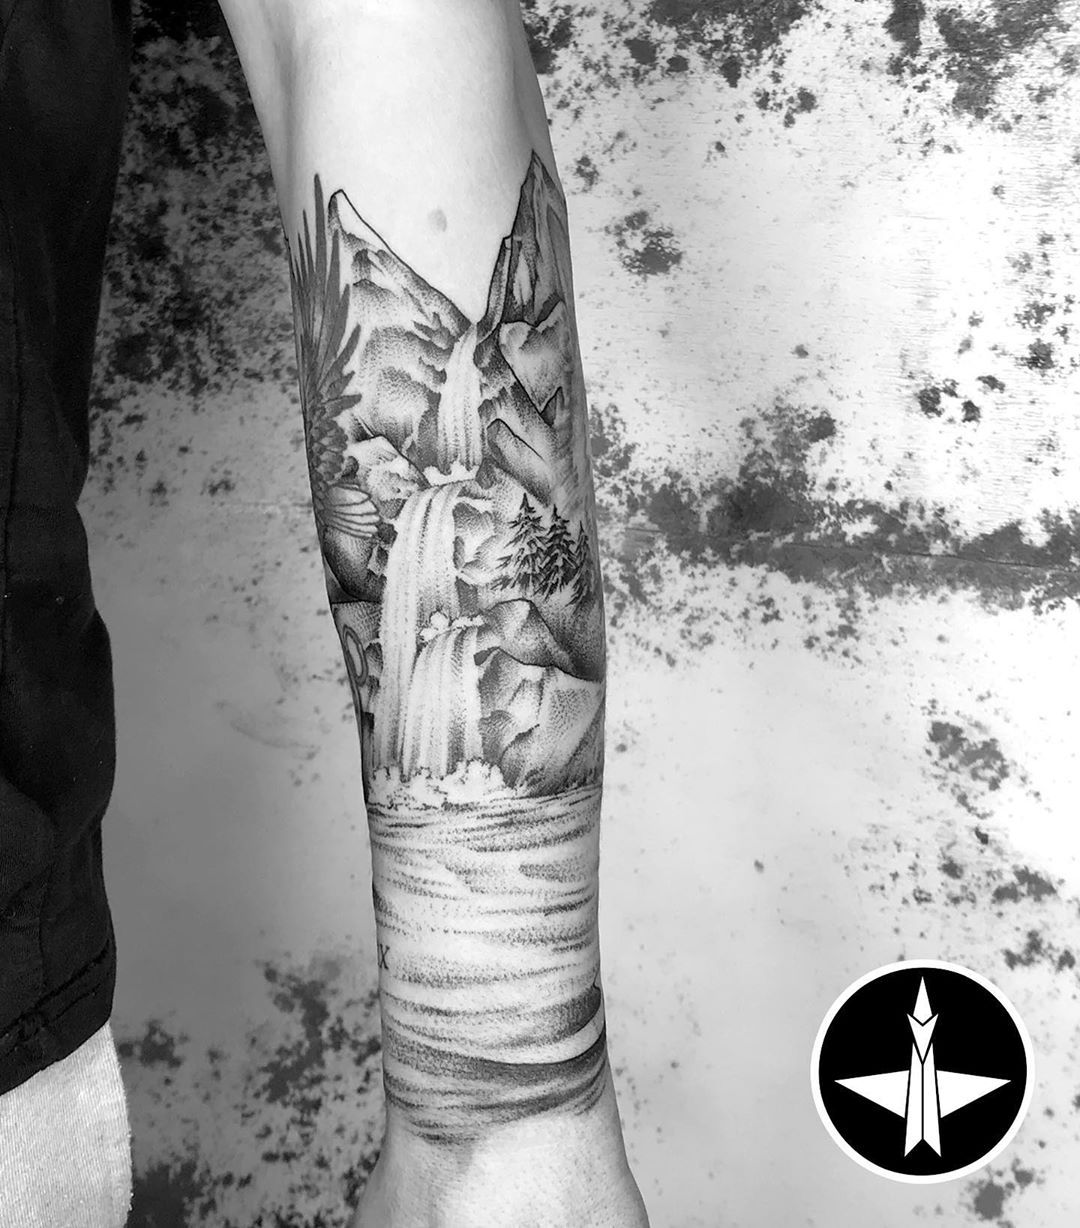 Another one from before .../... Added landscape around some pre-existing tattoos../.... Well sat @jacobabbott1998_ it was a pleasure having you in dude 👍🏻 #tattoo #tattooartist #tattooart #texture #texturetattoo #dotwork #dotworktattoo #stippletattoo #landscapetattoo #landscape #waterfall #blackwork #blackworktattoo #blackworkartist #blackworkers #jakobbelbin